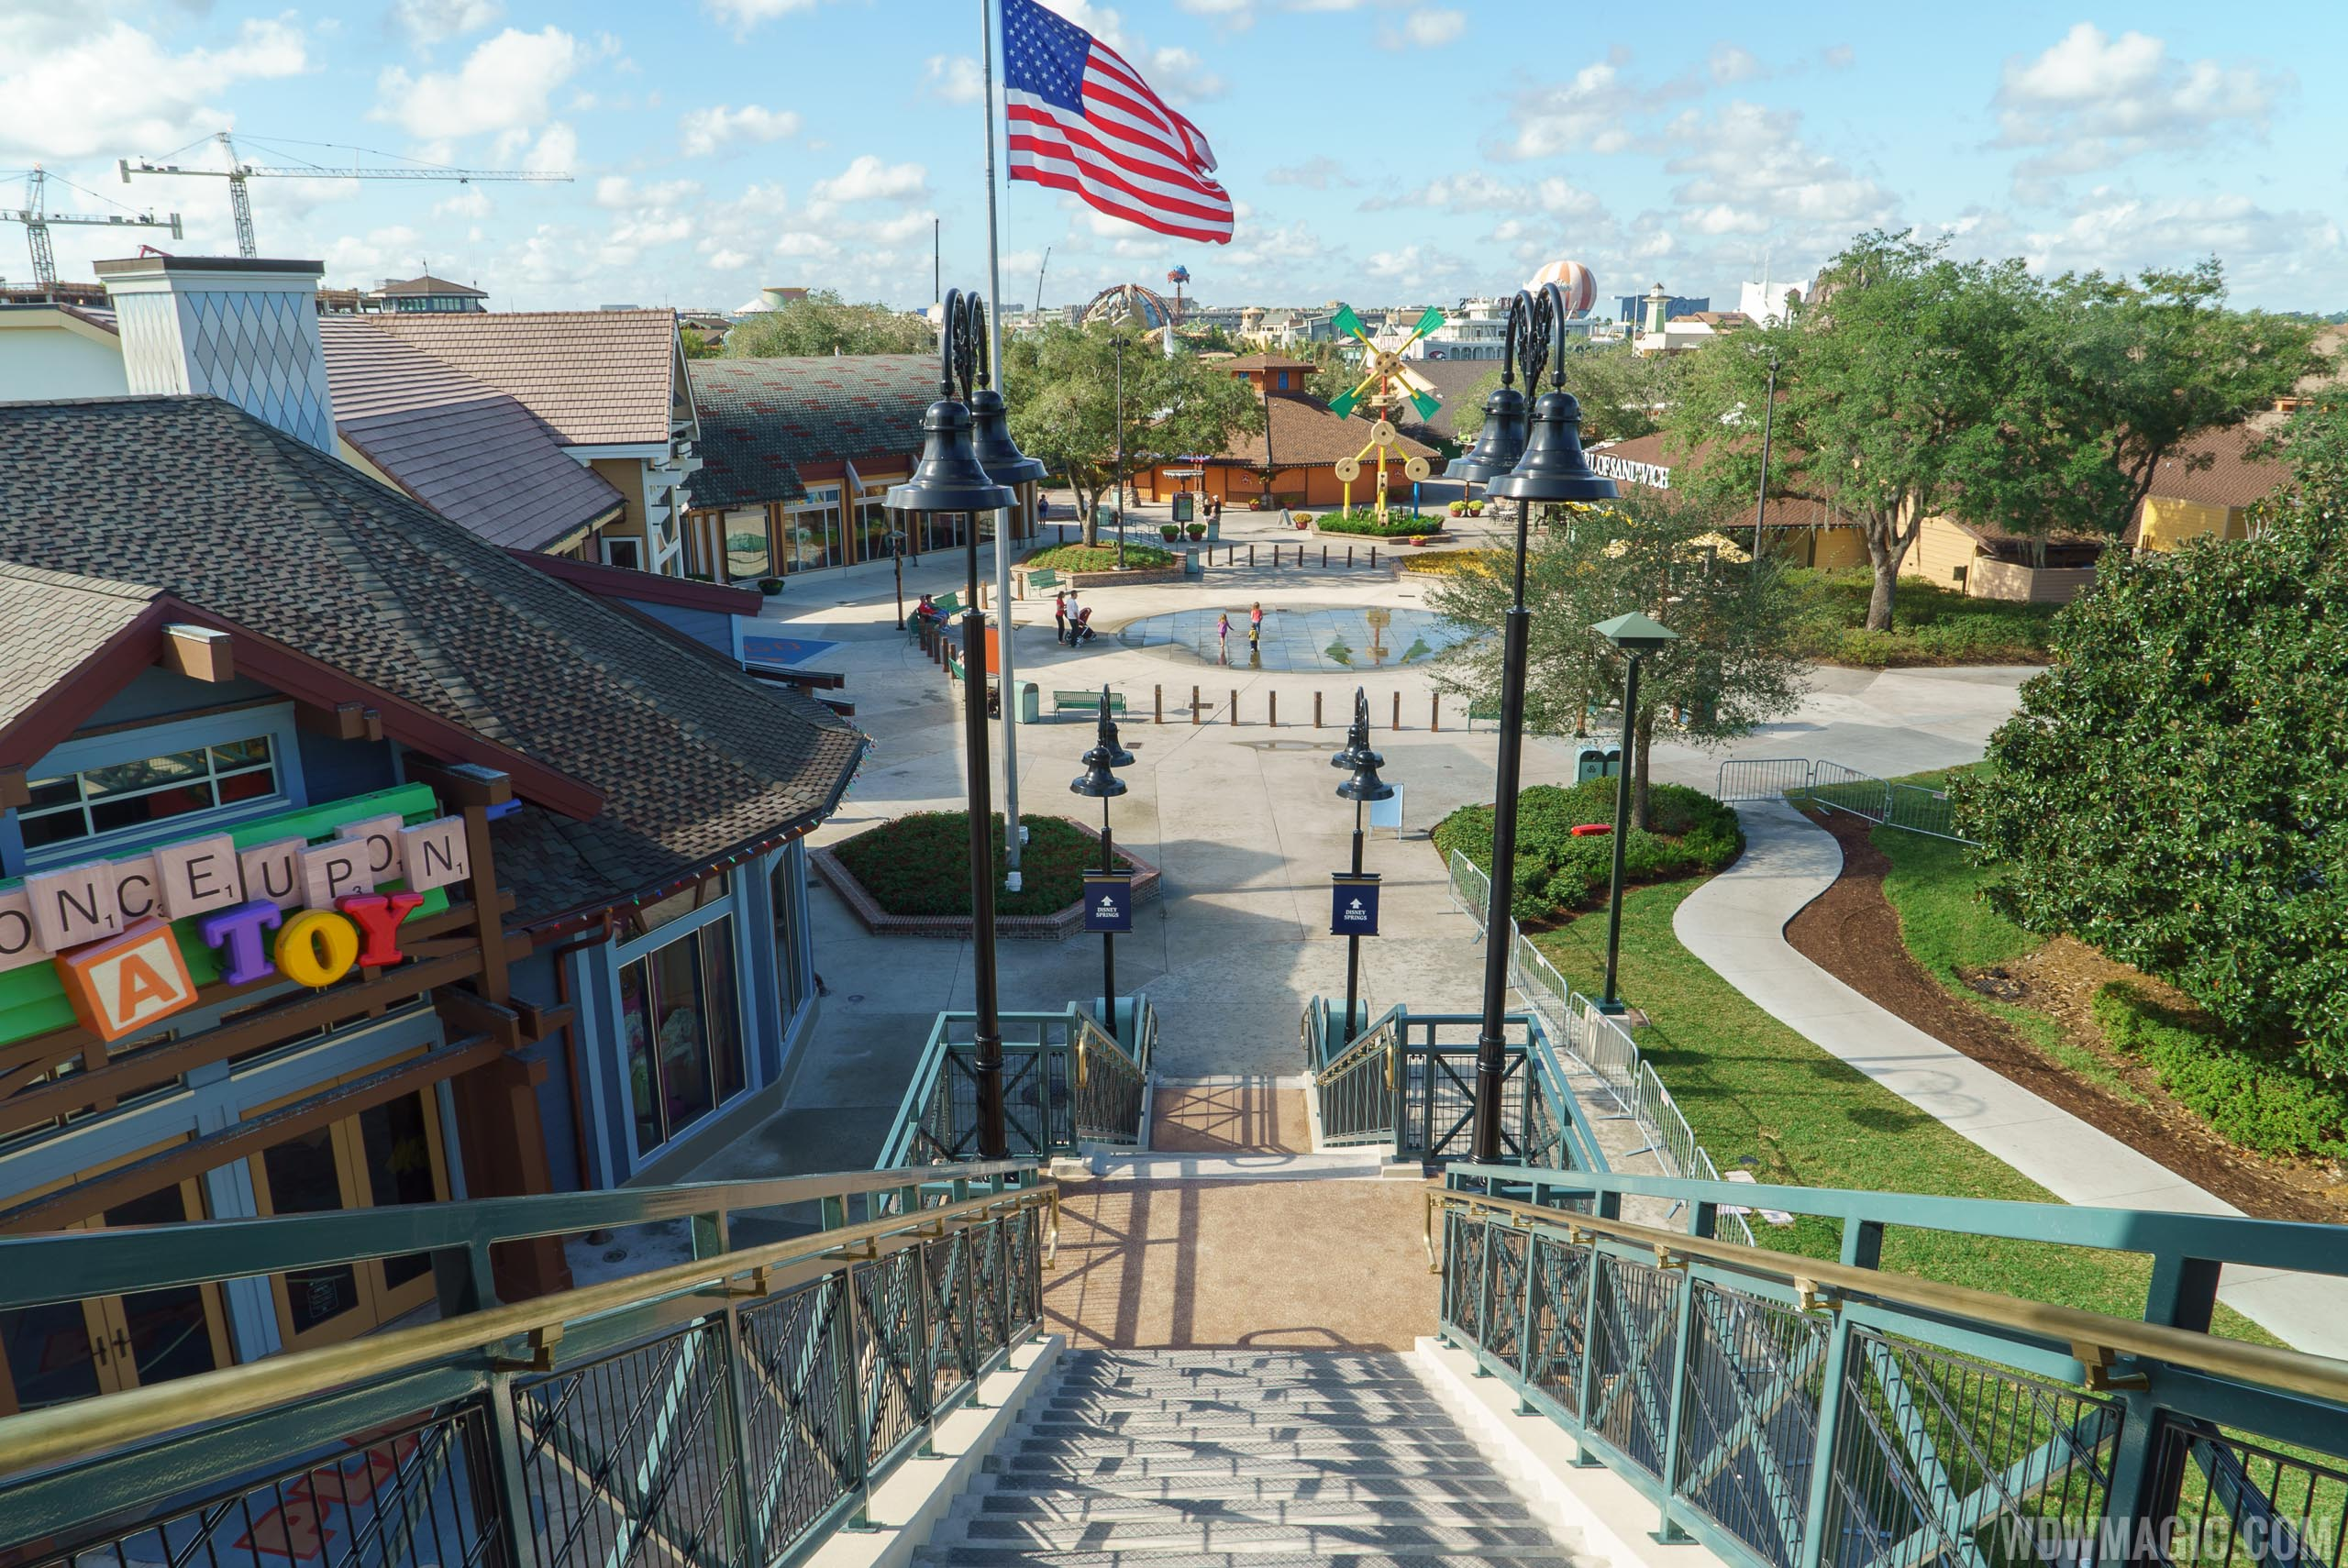 View from the top of the Marketplace stairway